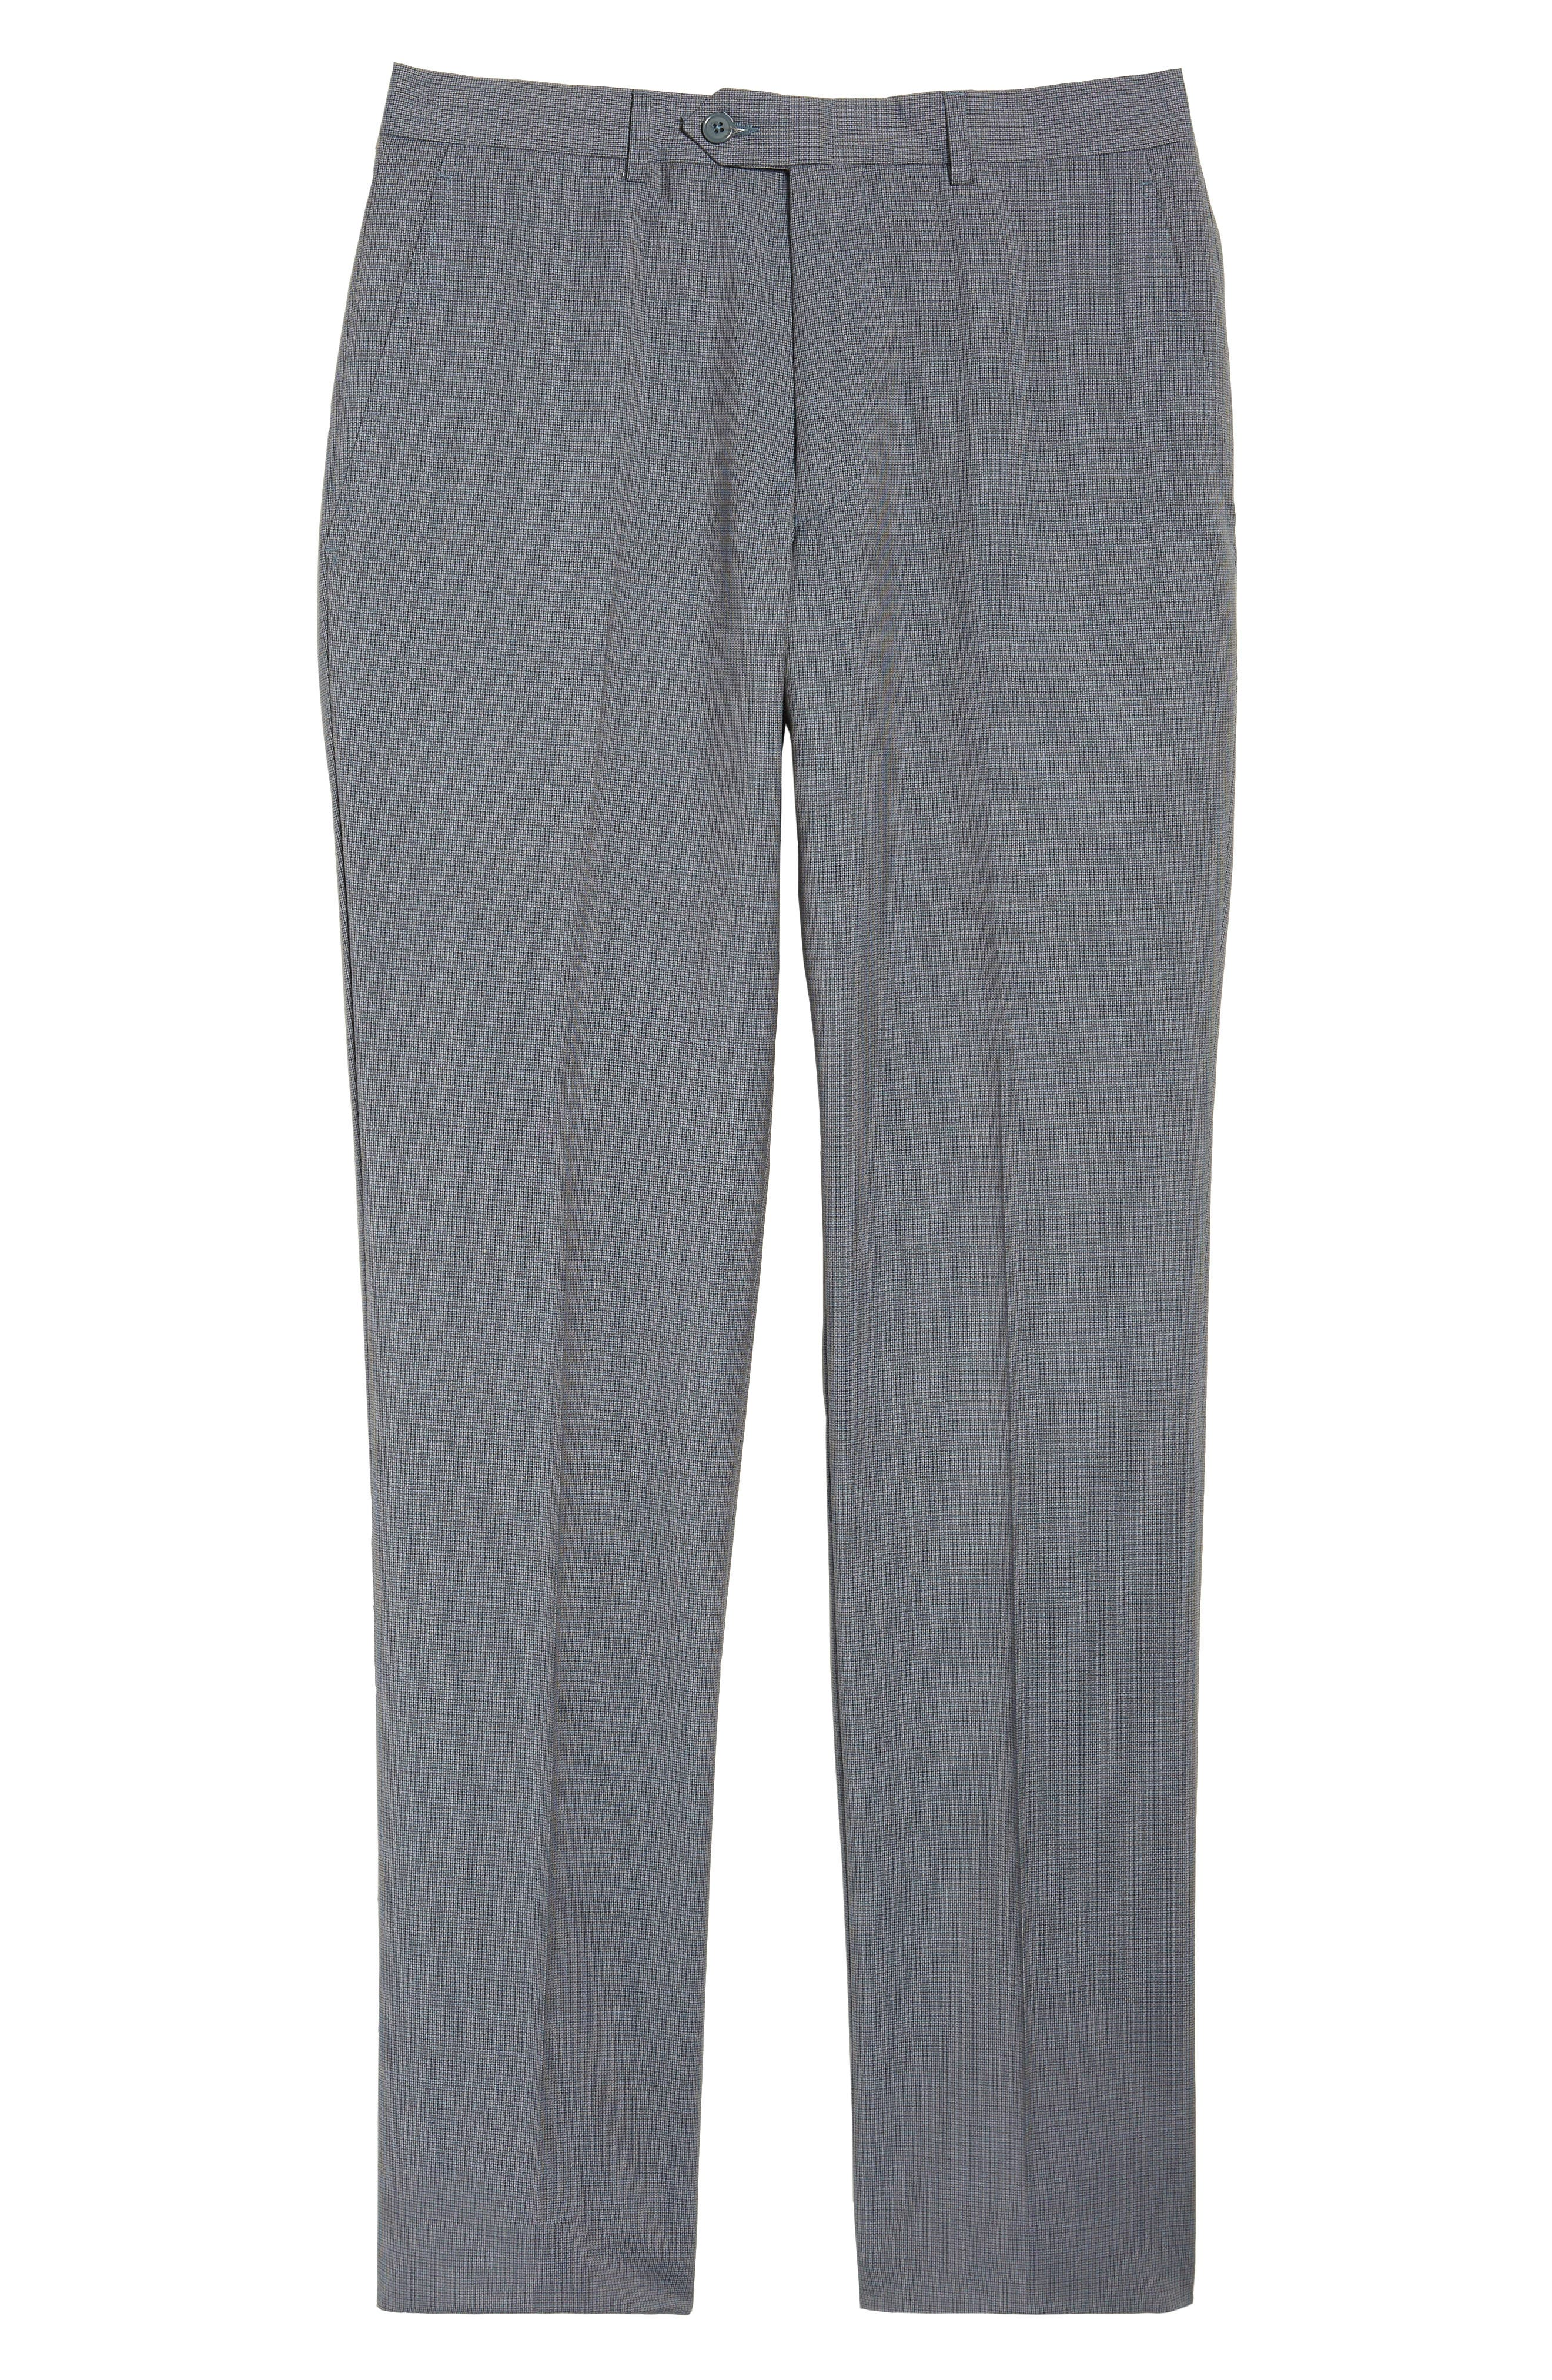 Flat Front Check Wool Trousers,                             Alternate thumbnail 6, color,